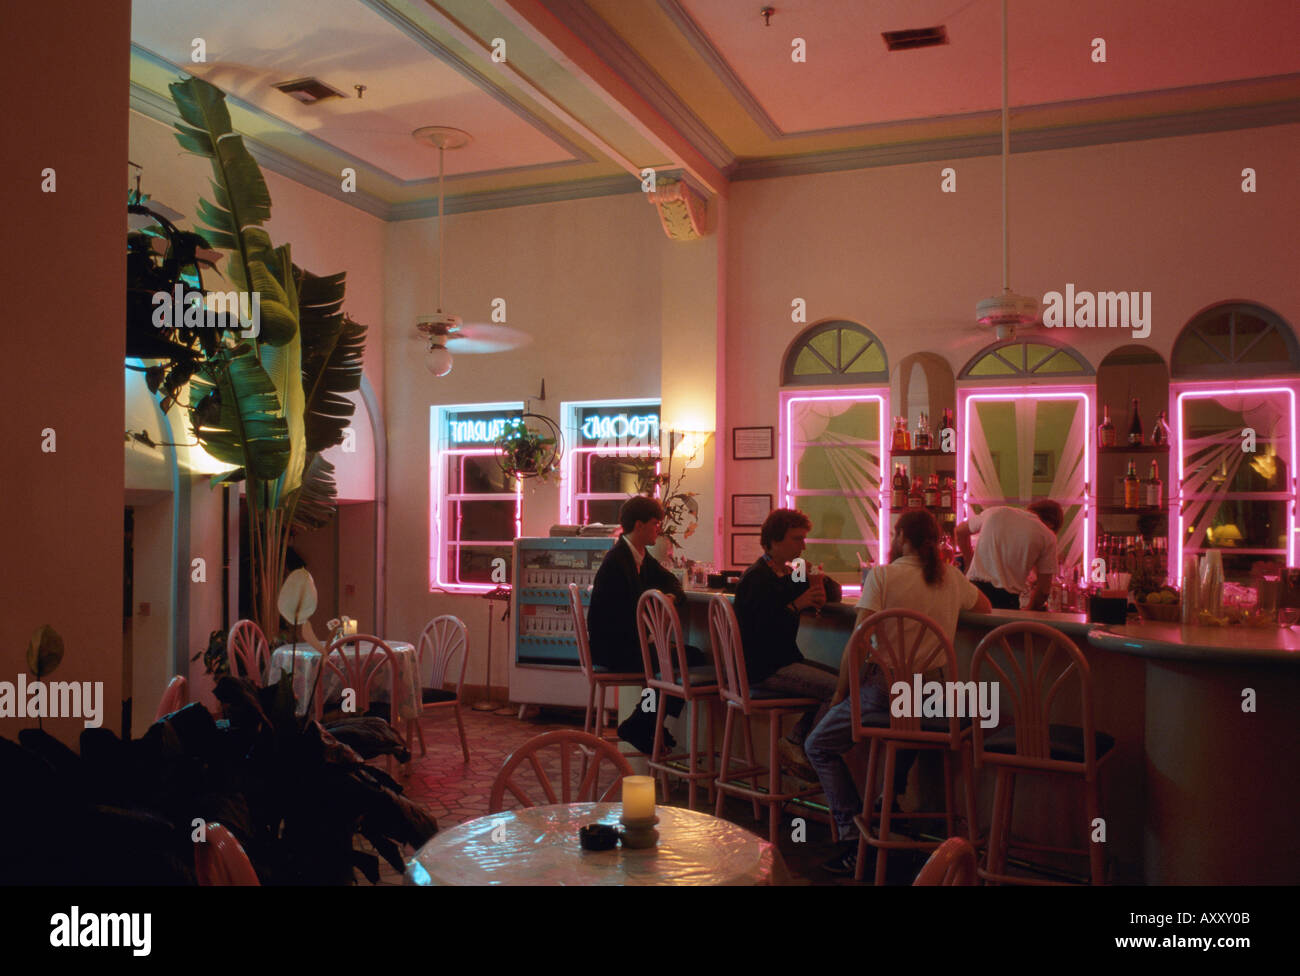 Miami, Ocean Drive, Art Deco Restaurant, Bar Stock Photo: 5530378 ...